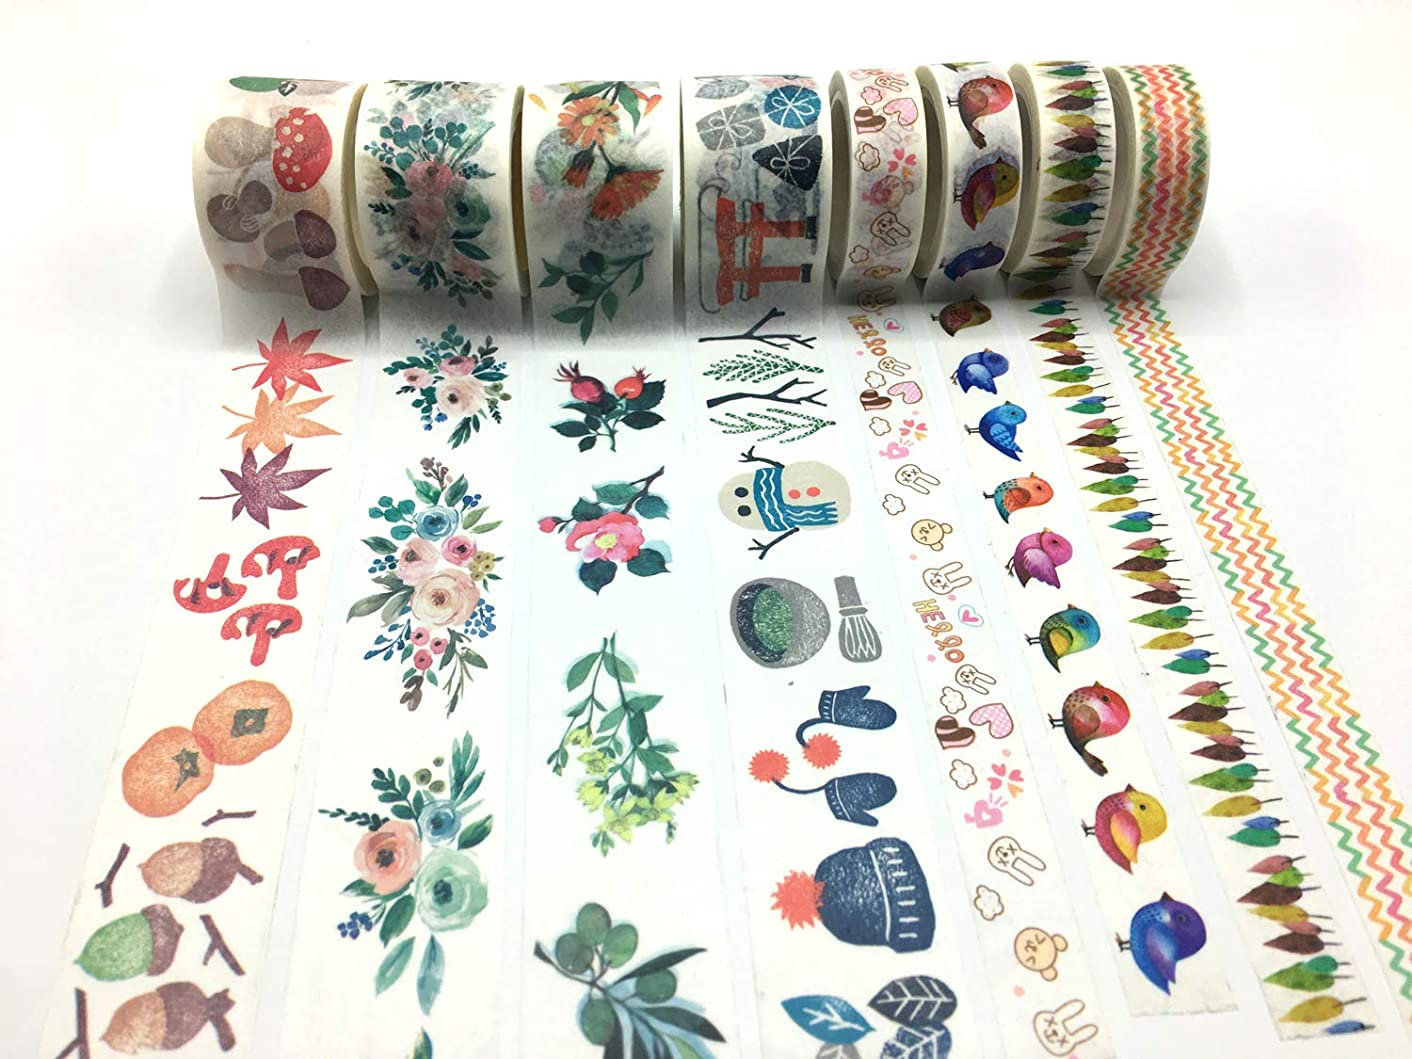 Washi Tape Floral Decorative Paper Masking Tape Space Planner Sticker for Arts and DIY Crafts, Scrapbooking, Bullet Journal,Computer, Gift Wrapping, Holiday Party Supplies (Craft Tape Sticker 02)